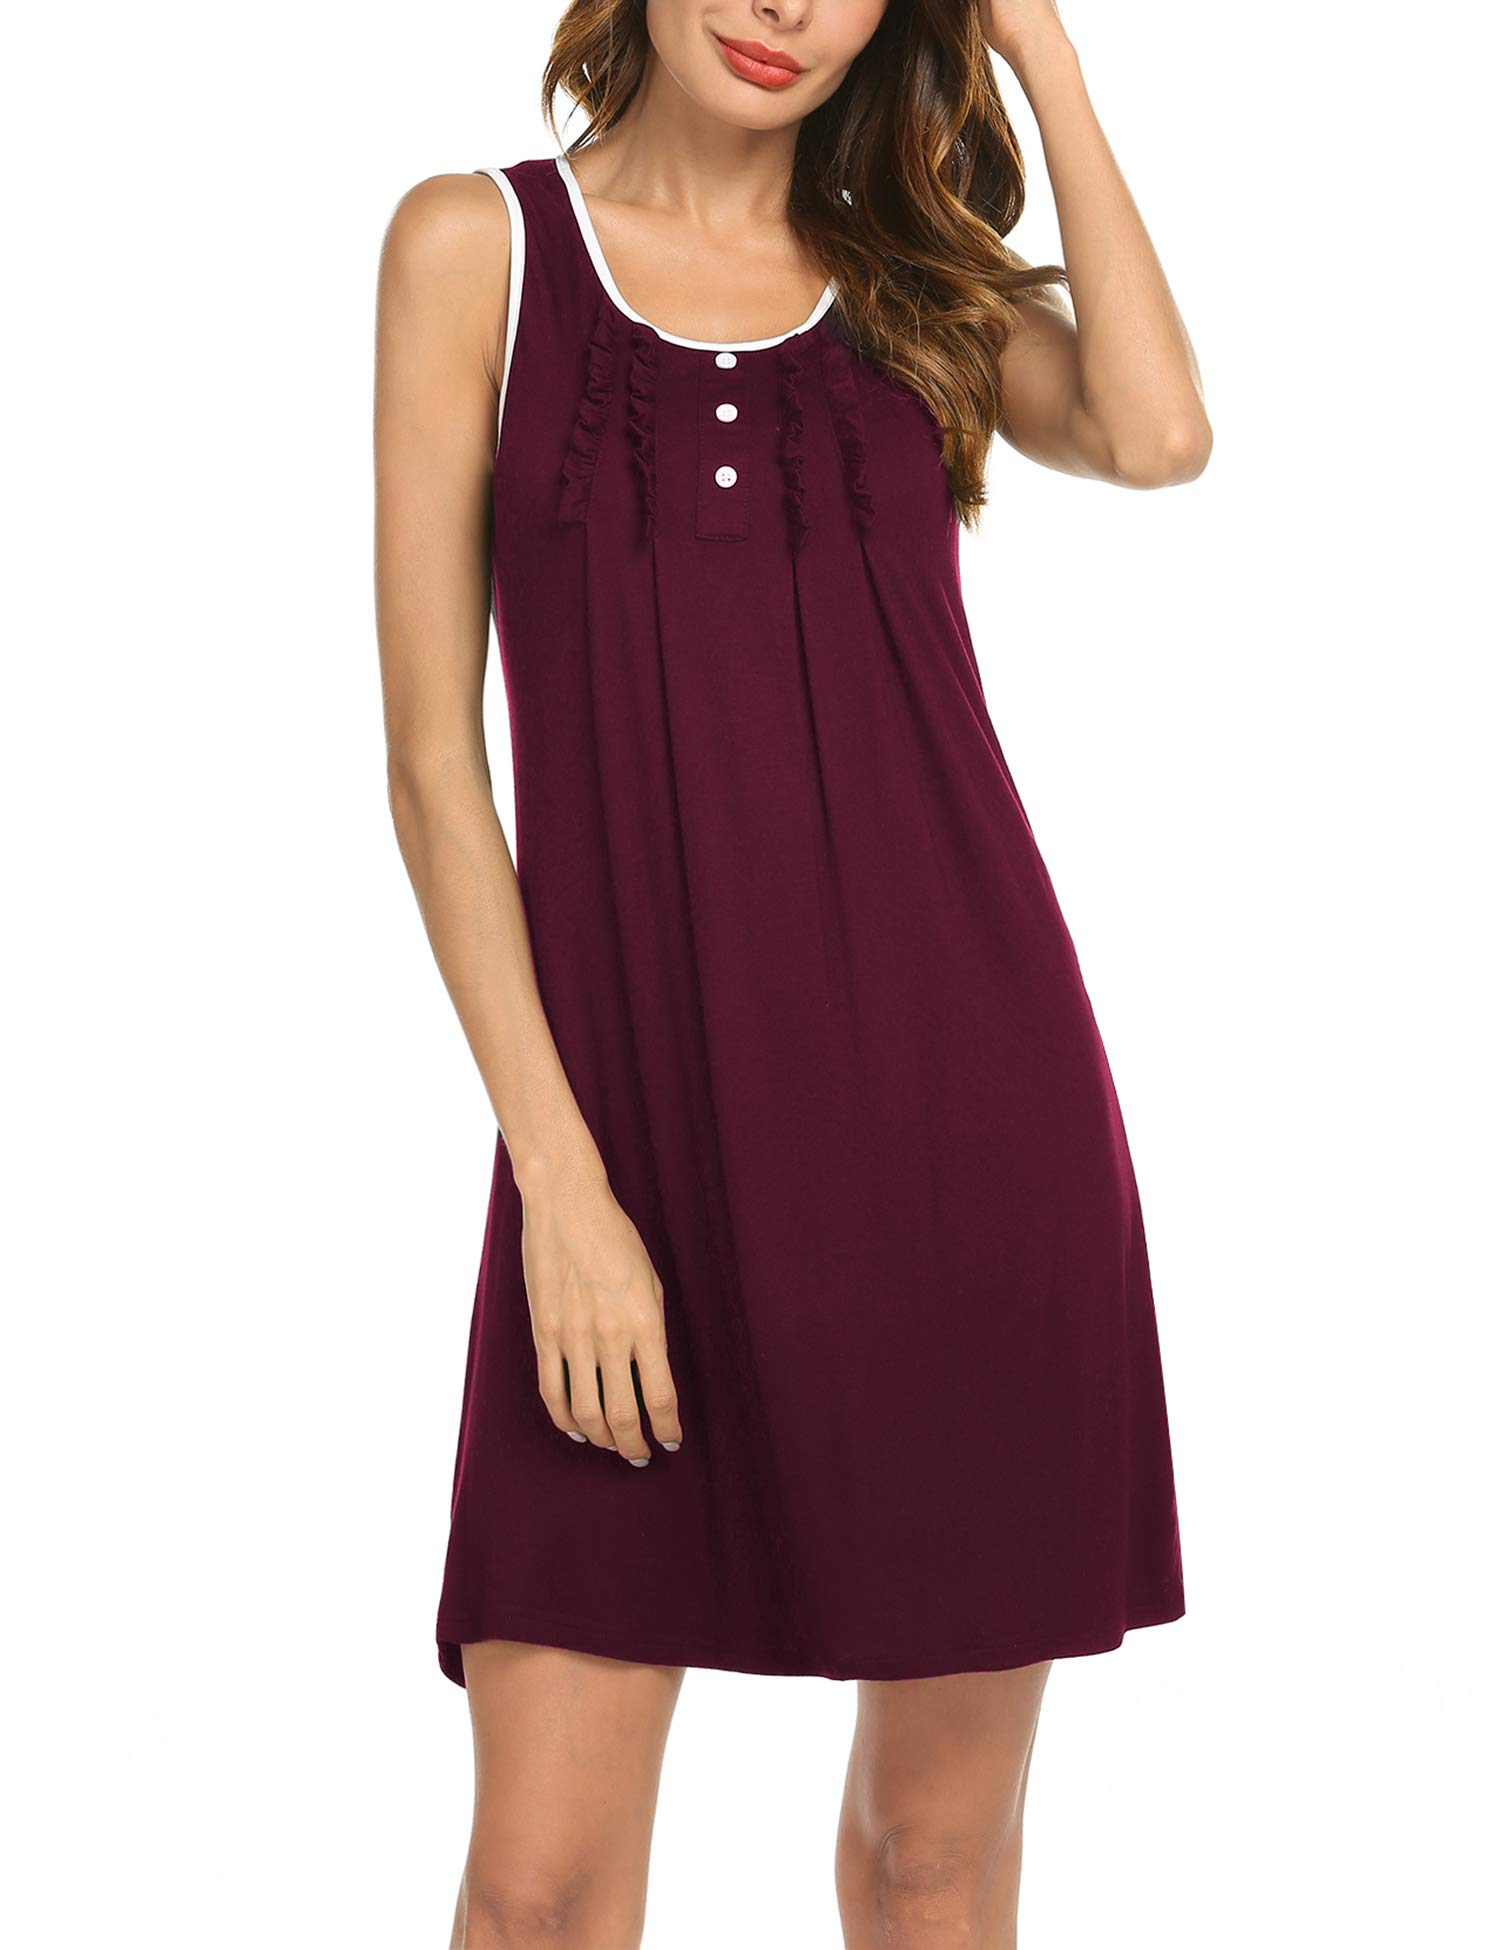 Hotouch Sleeveless Night Dress Women's Cotton Comfy Sleep Dress Loungewear Wine Red M